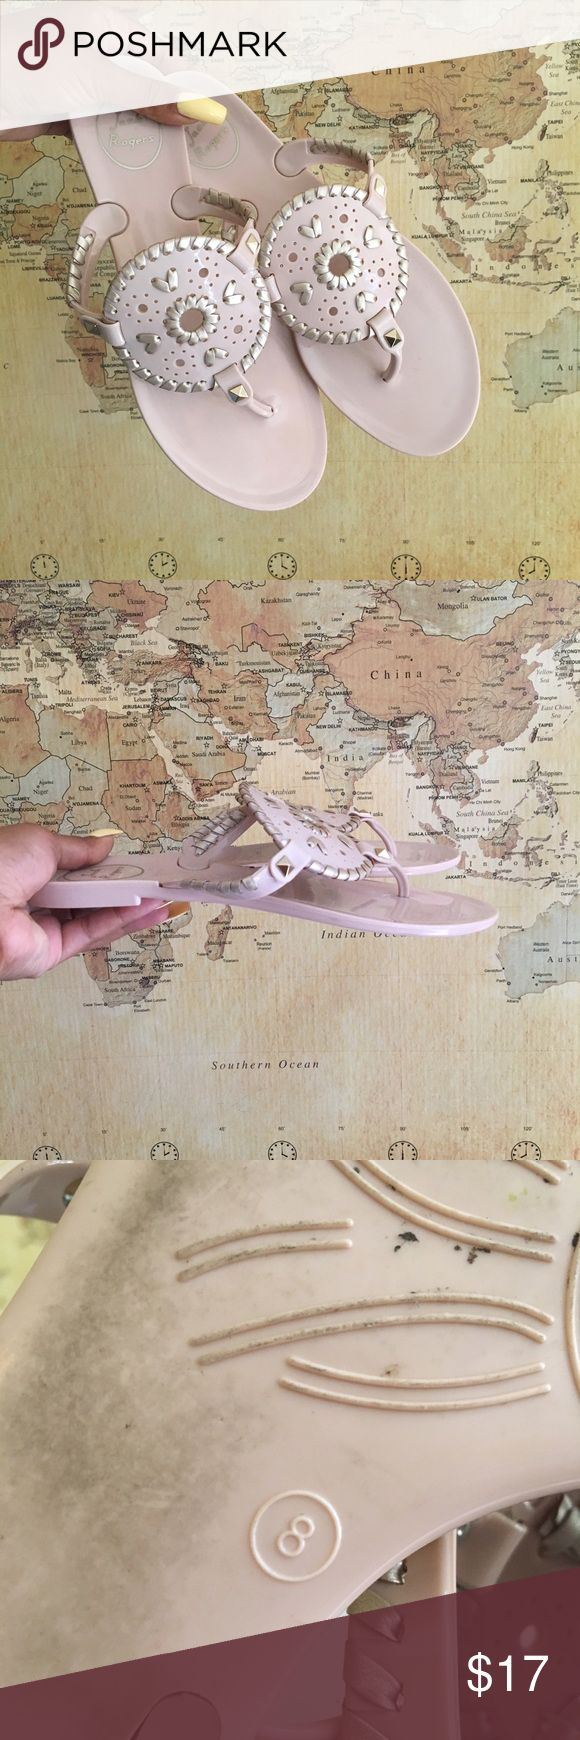 Jack Rodgers Rubber Sandals Baby pink and white gold jack Rodgers rubber sandals. Minimal wear, make offers 😋 Jack Rogers Shoes Sandals